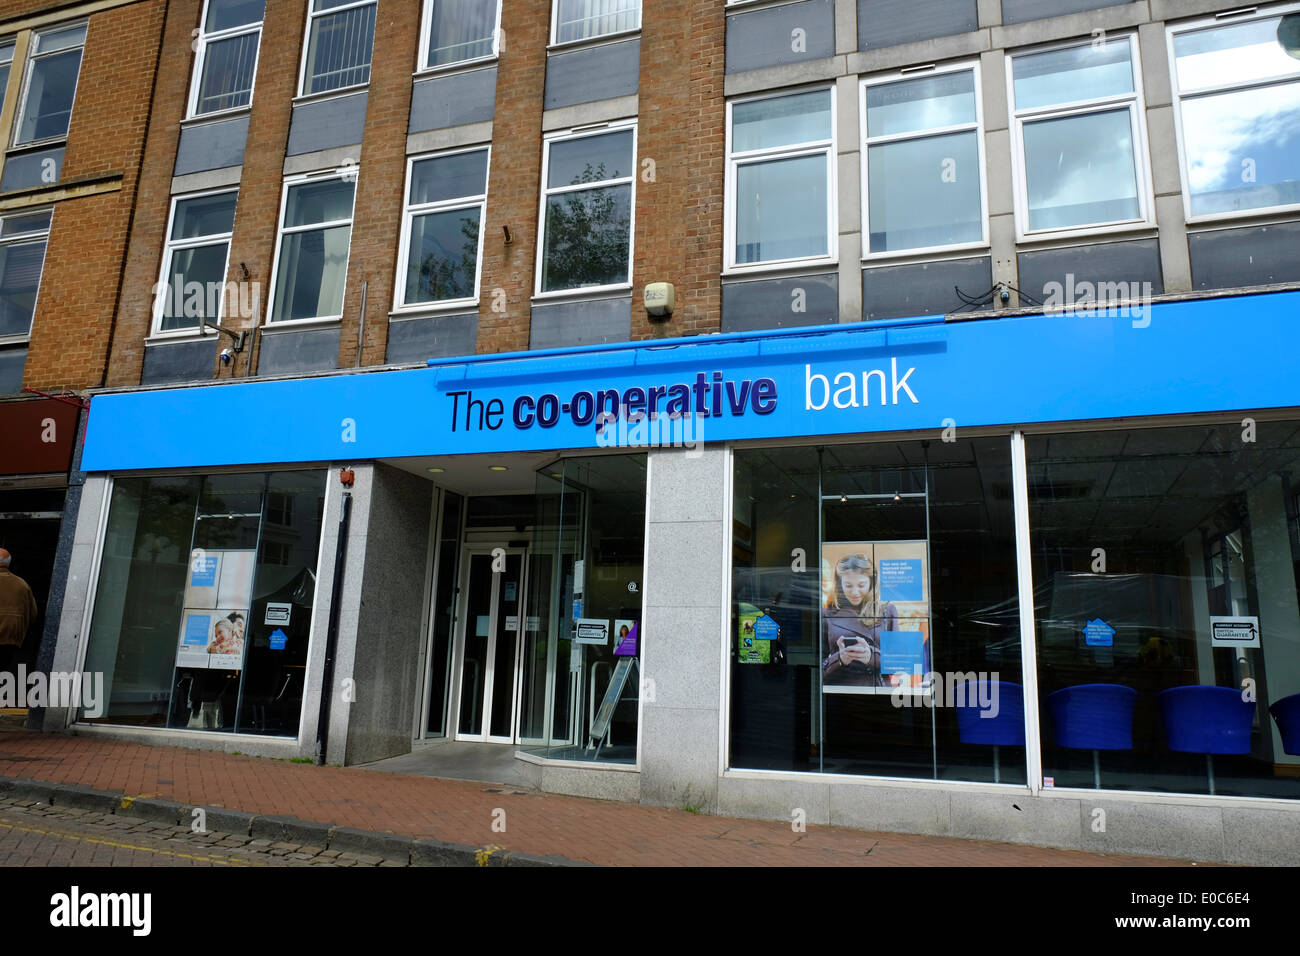 The co-operative bank in Aylesbury, England - Stock Image